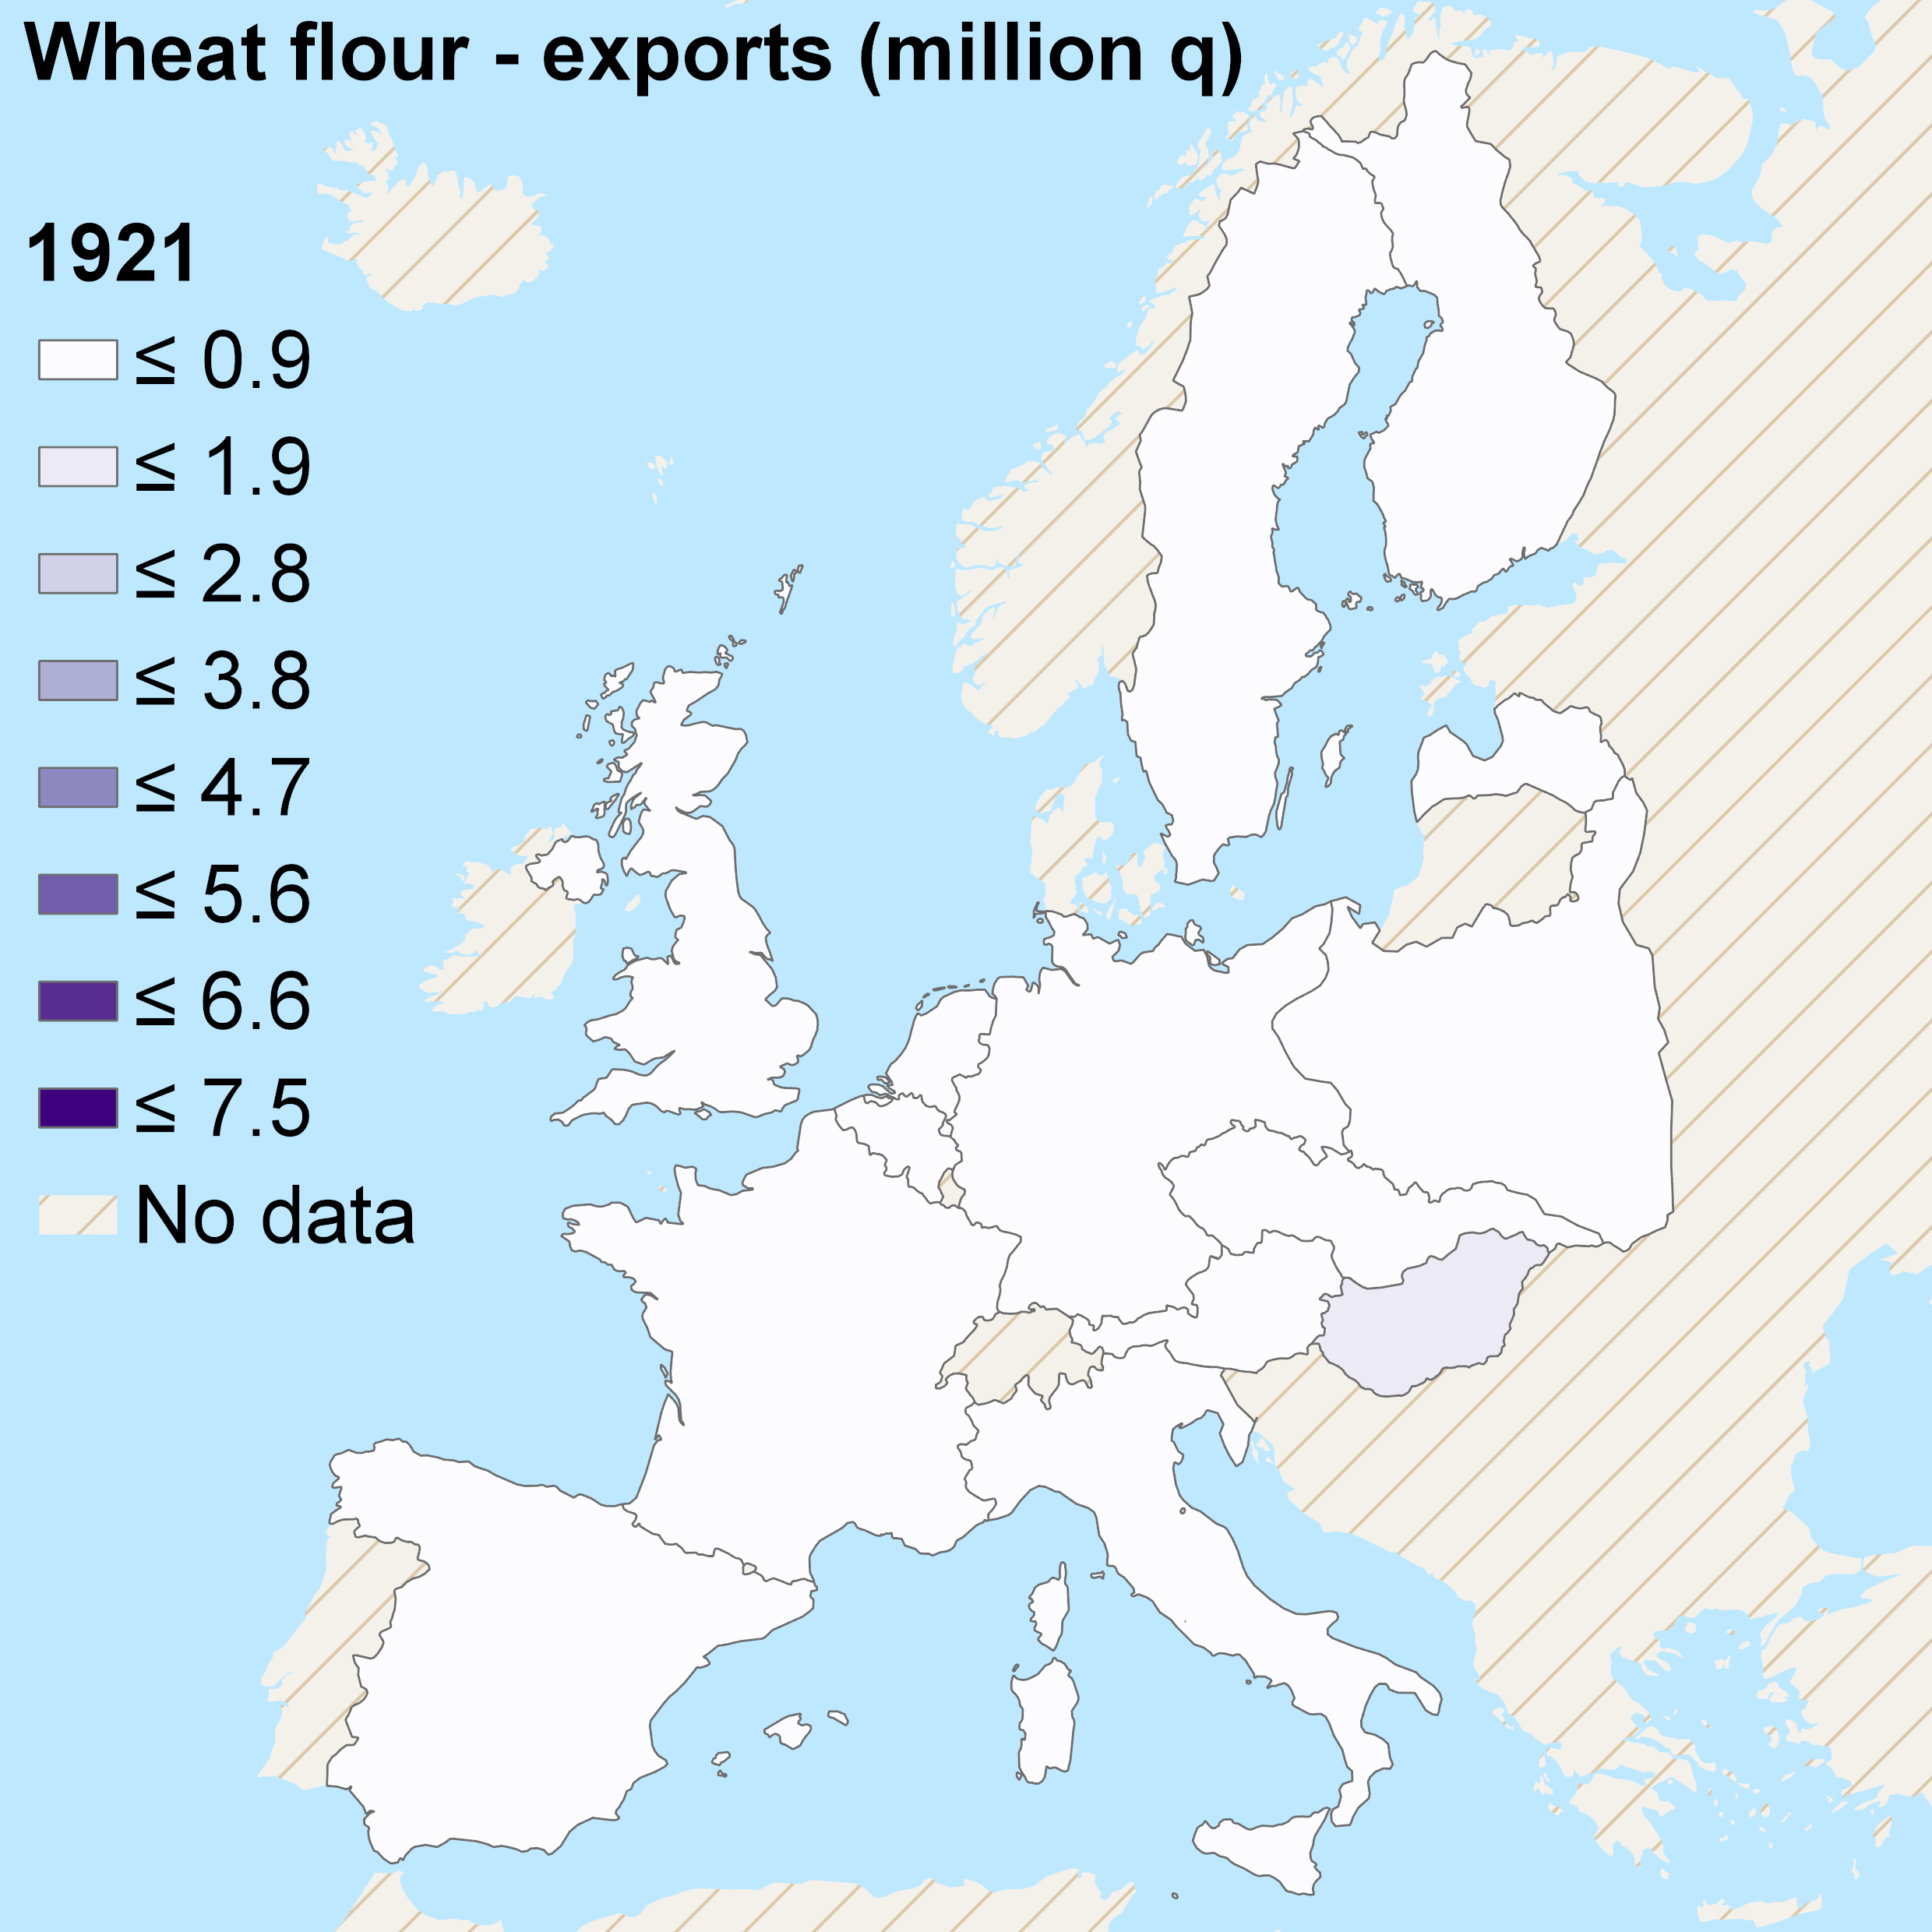 wheat-flour-exports-1921-v2